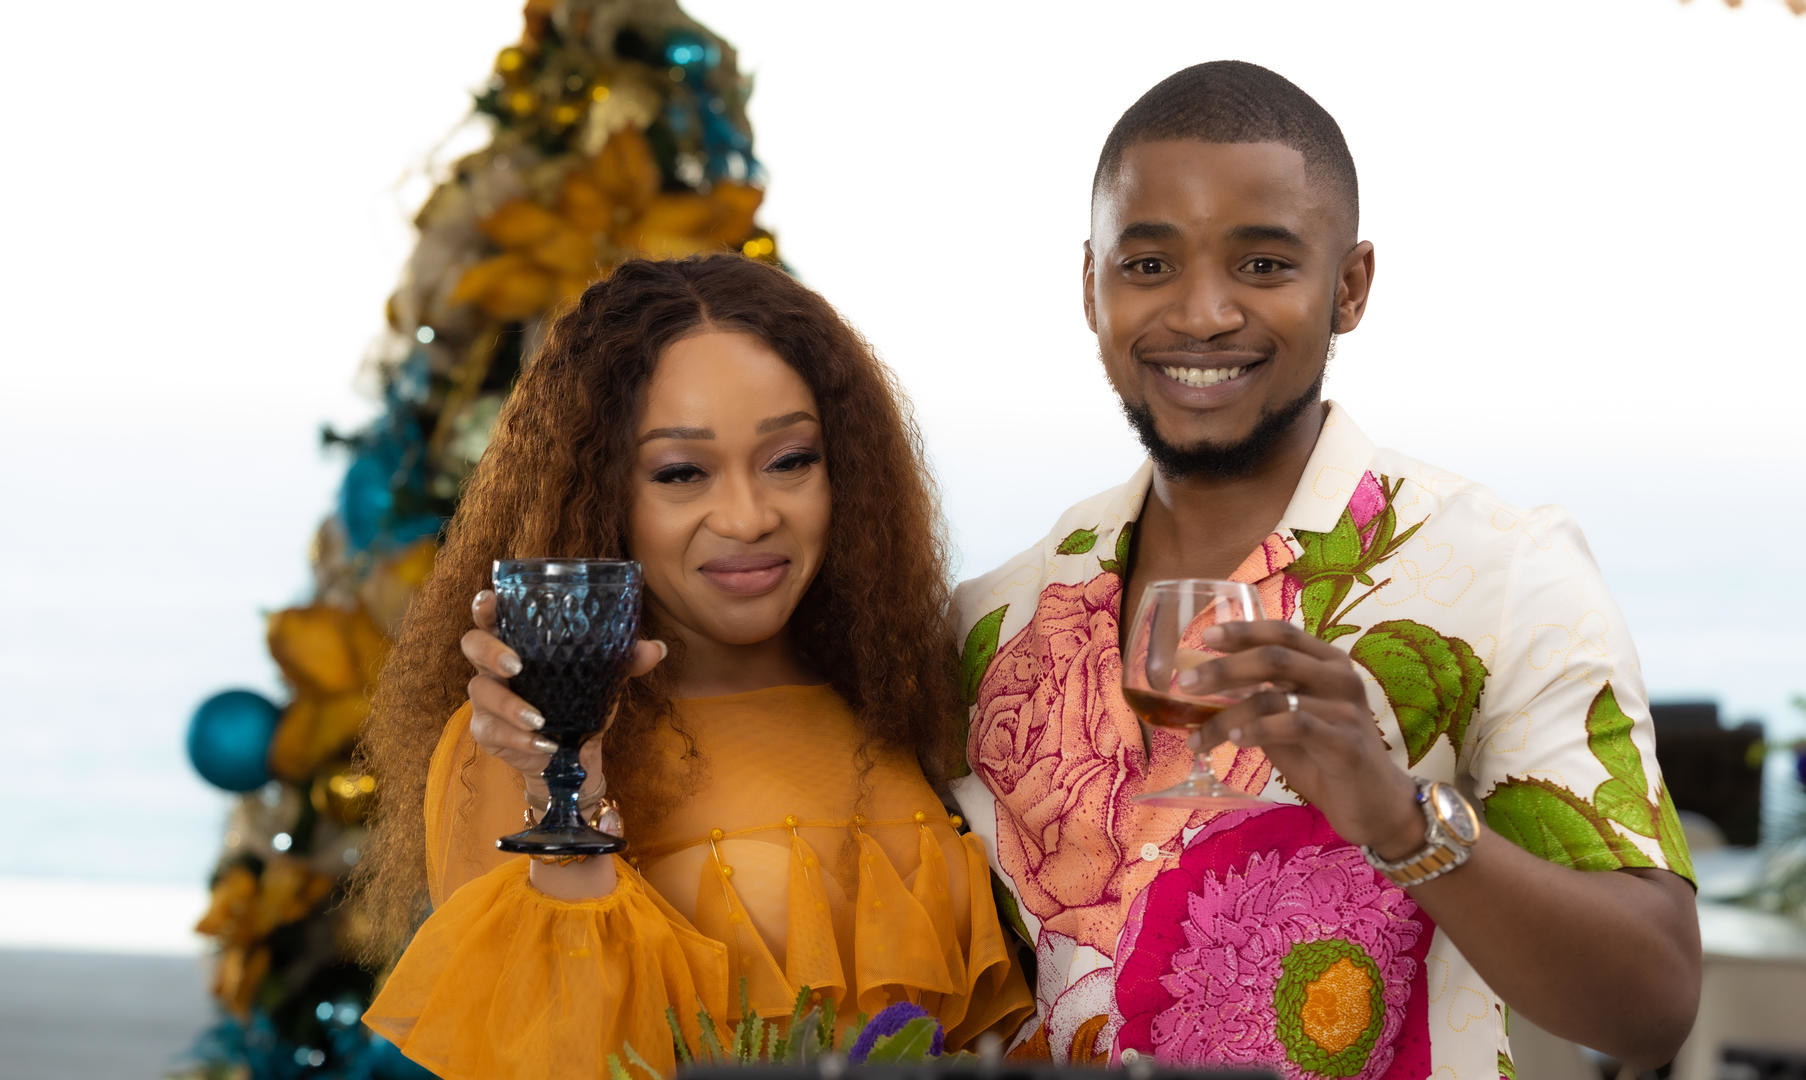 Two people raising their glasses in a toast